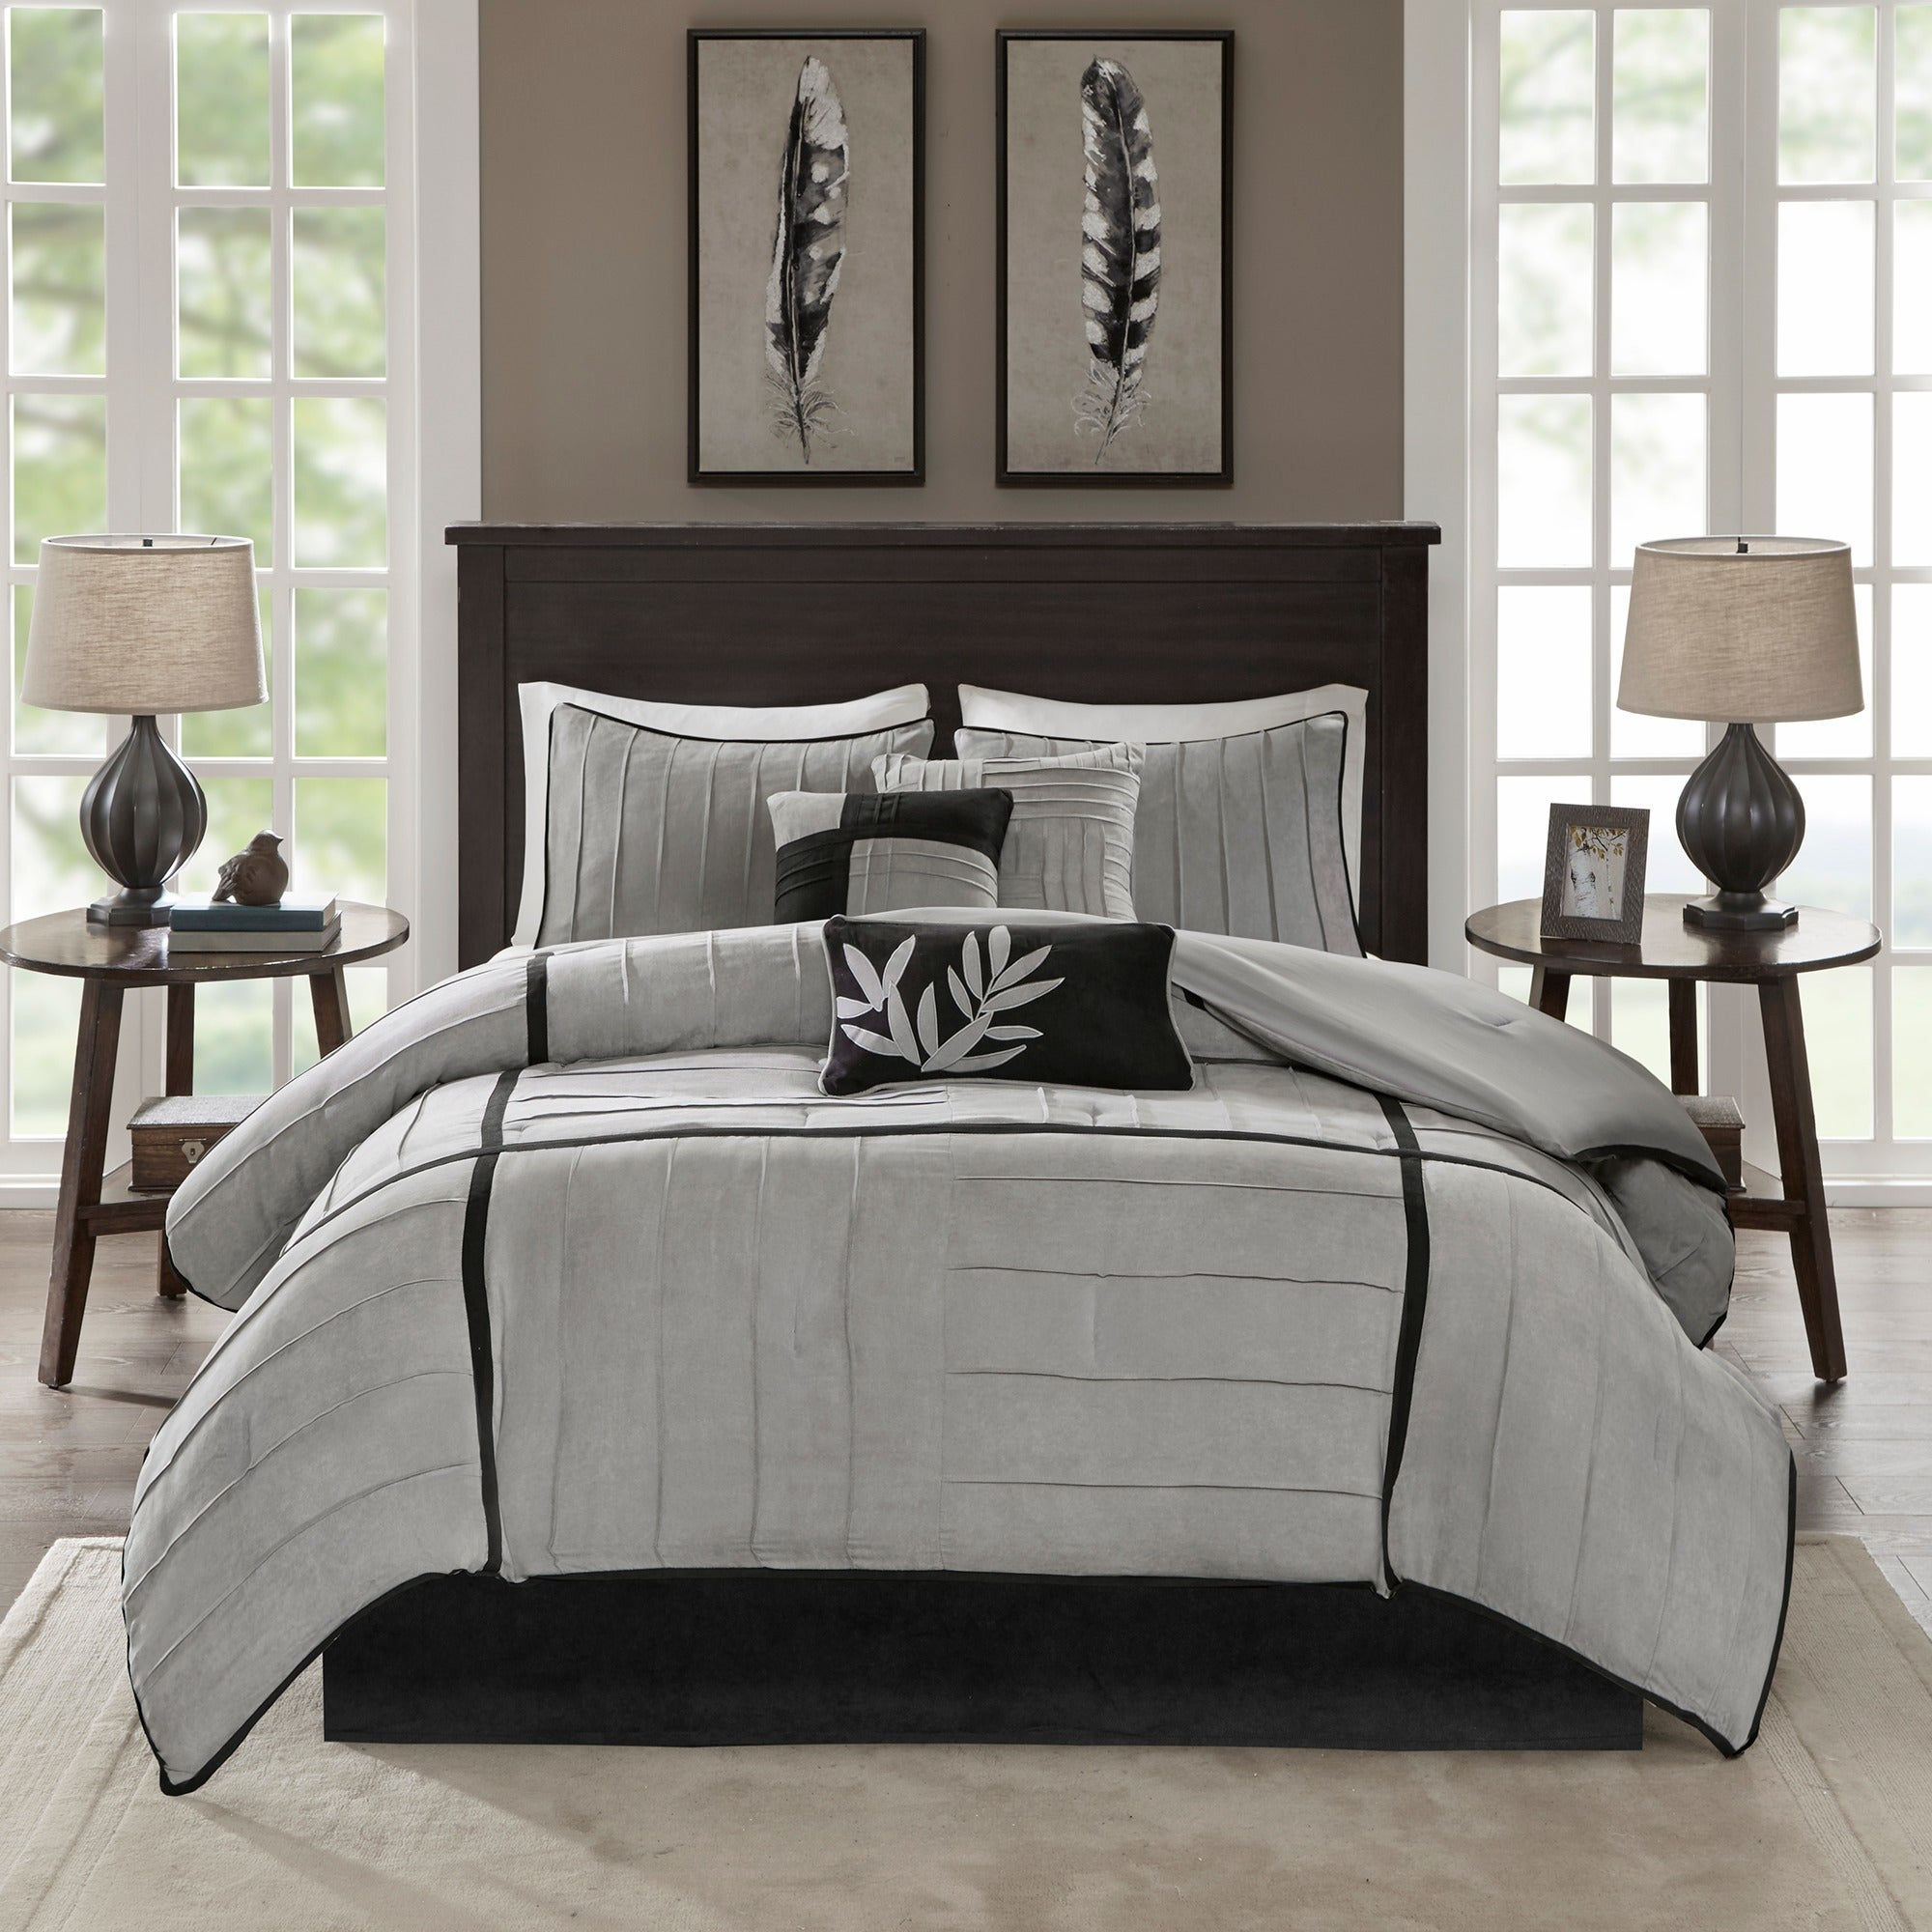 product croscill piece bedding set comforter bath suede free today caribou overstock micro shipping